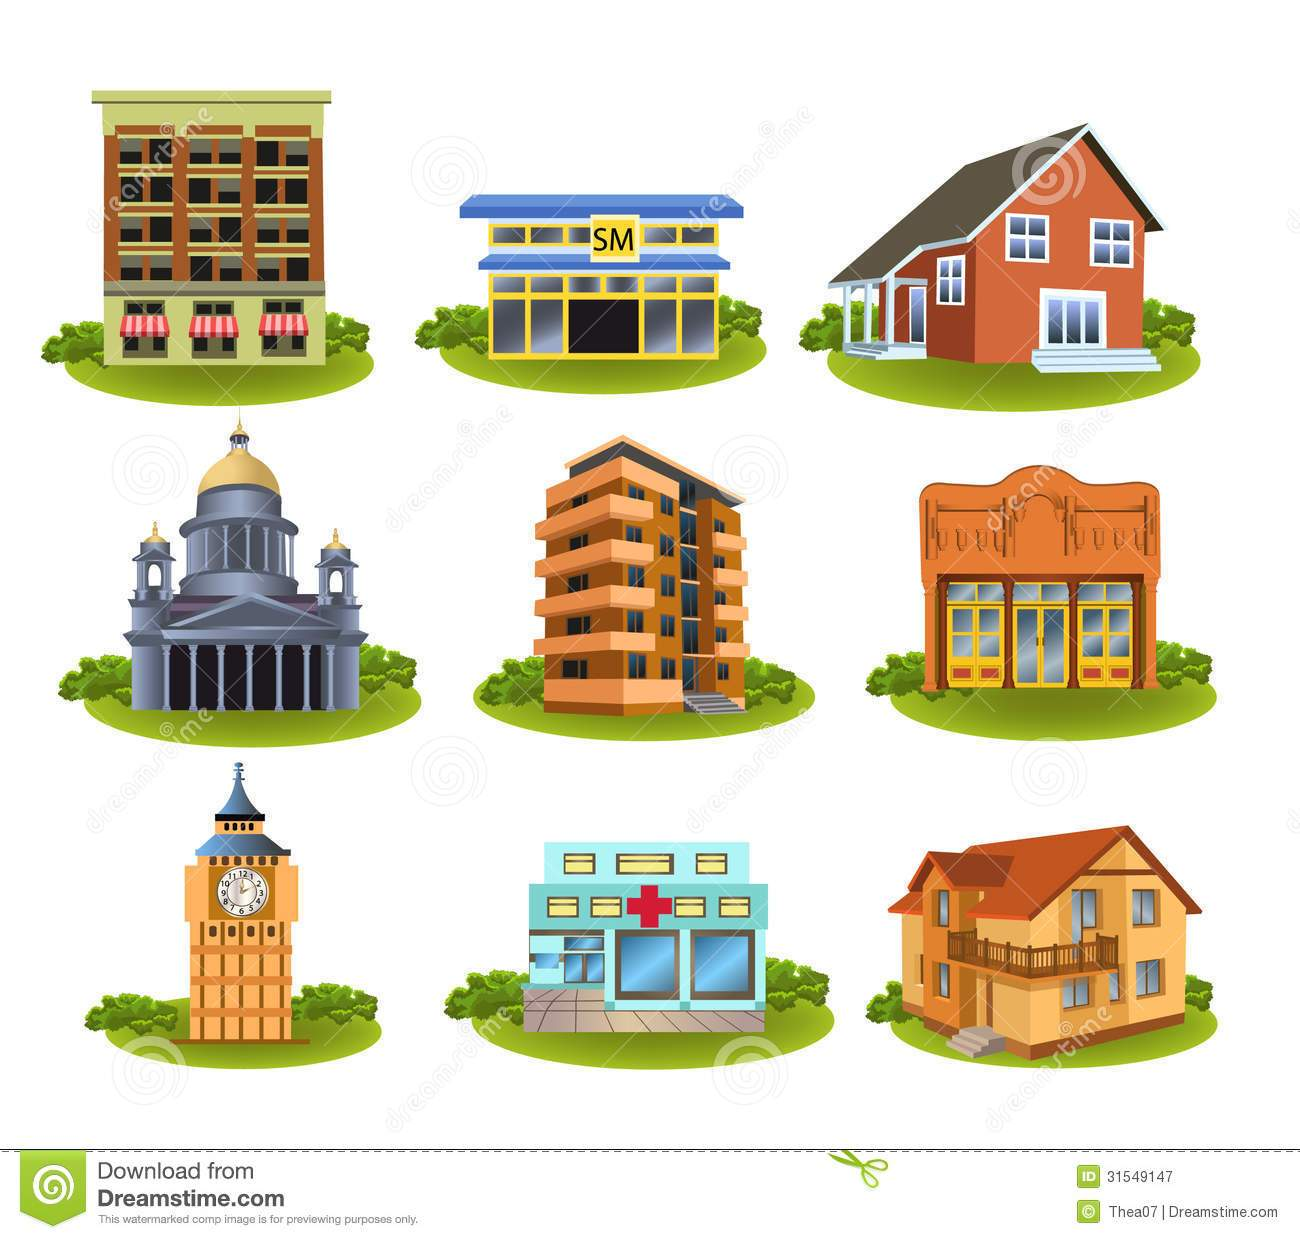 Pictures of different community places clipart 5 » Clipart ... clipart freeuse download